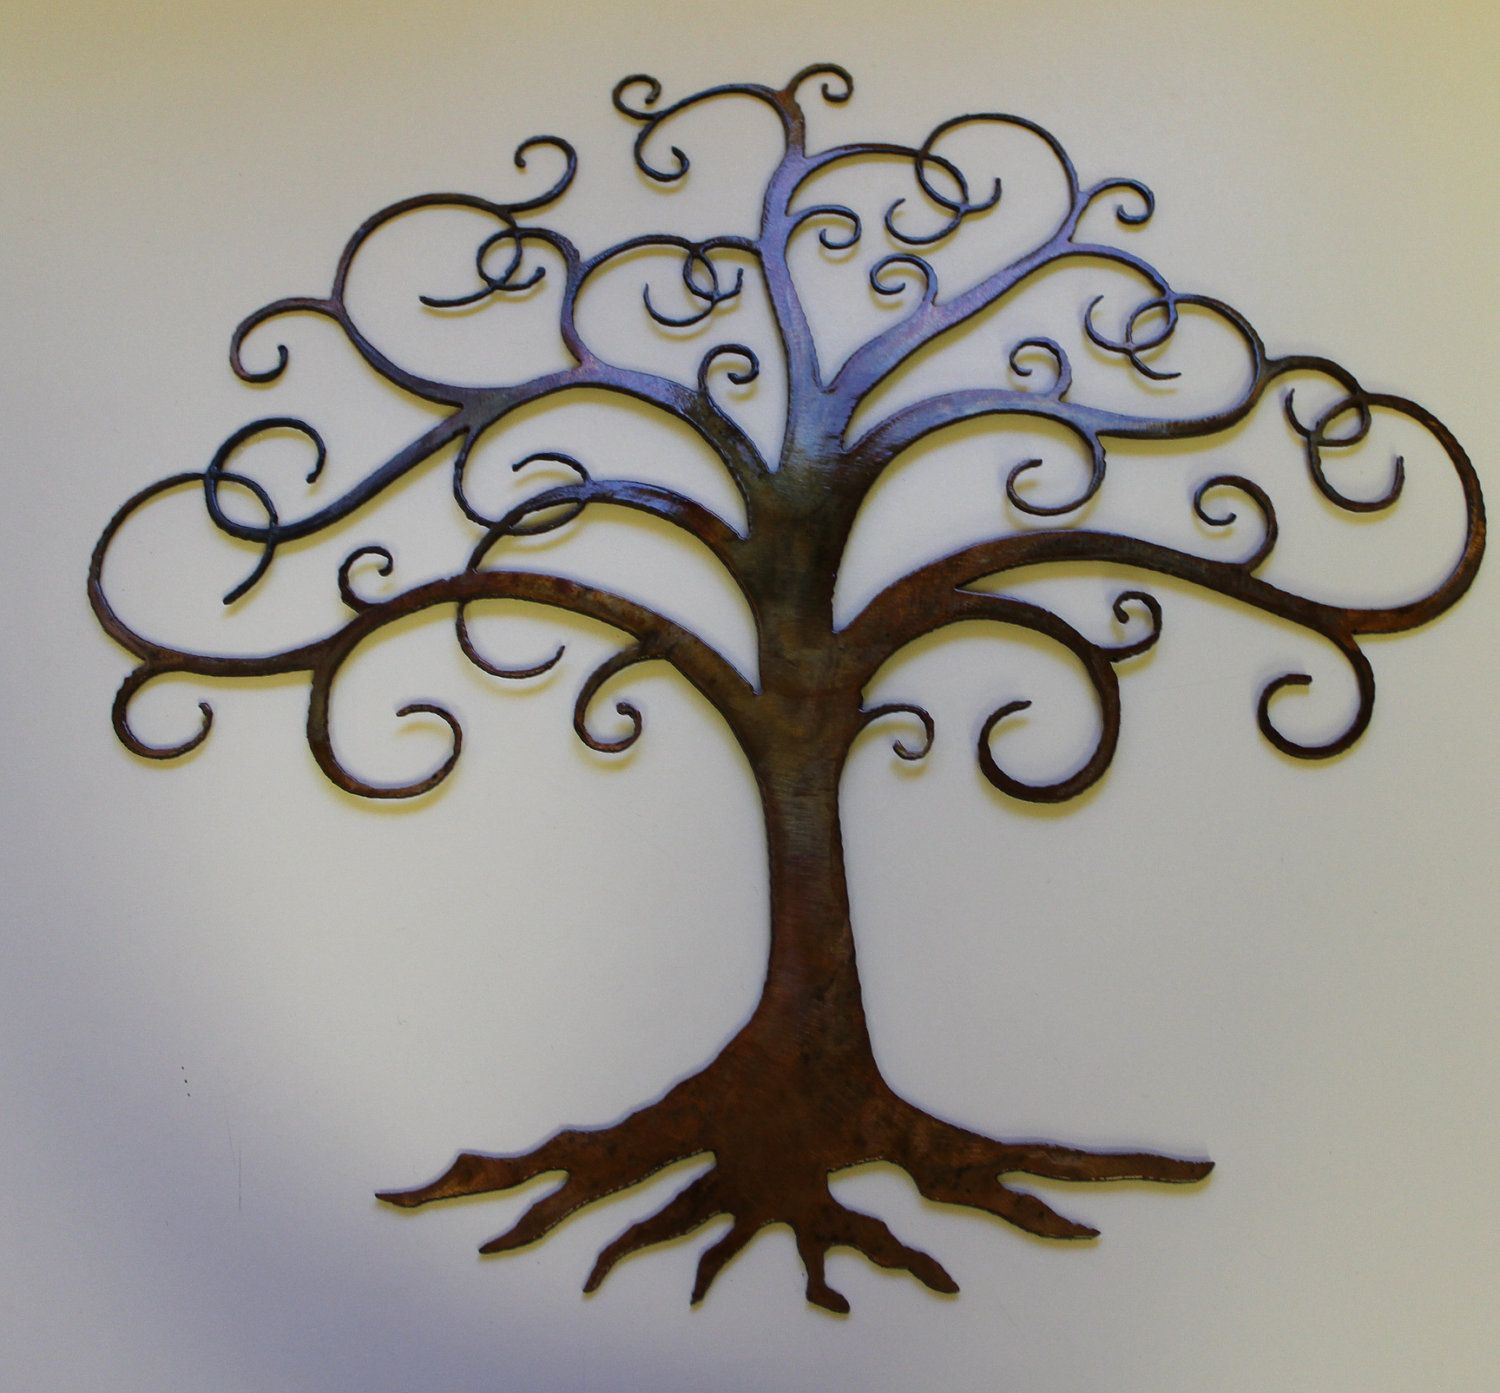 Tree Of Life Swirled Tree Of Life Metal Wall Art Decor